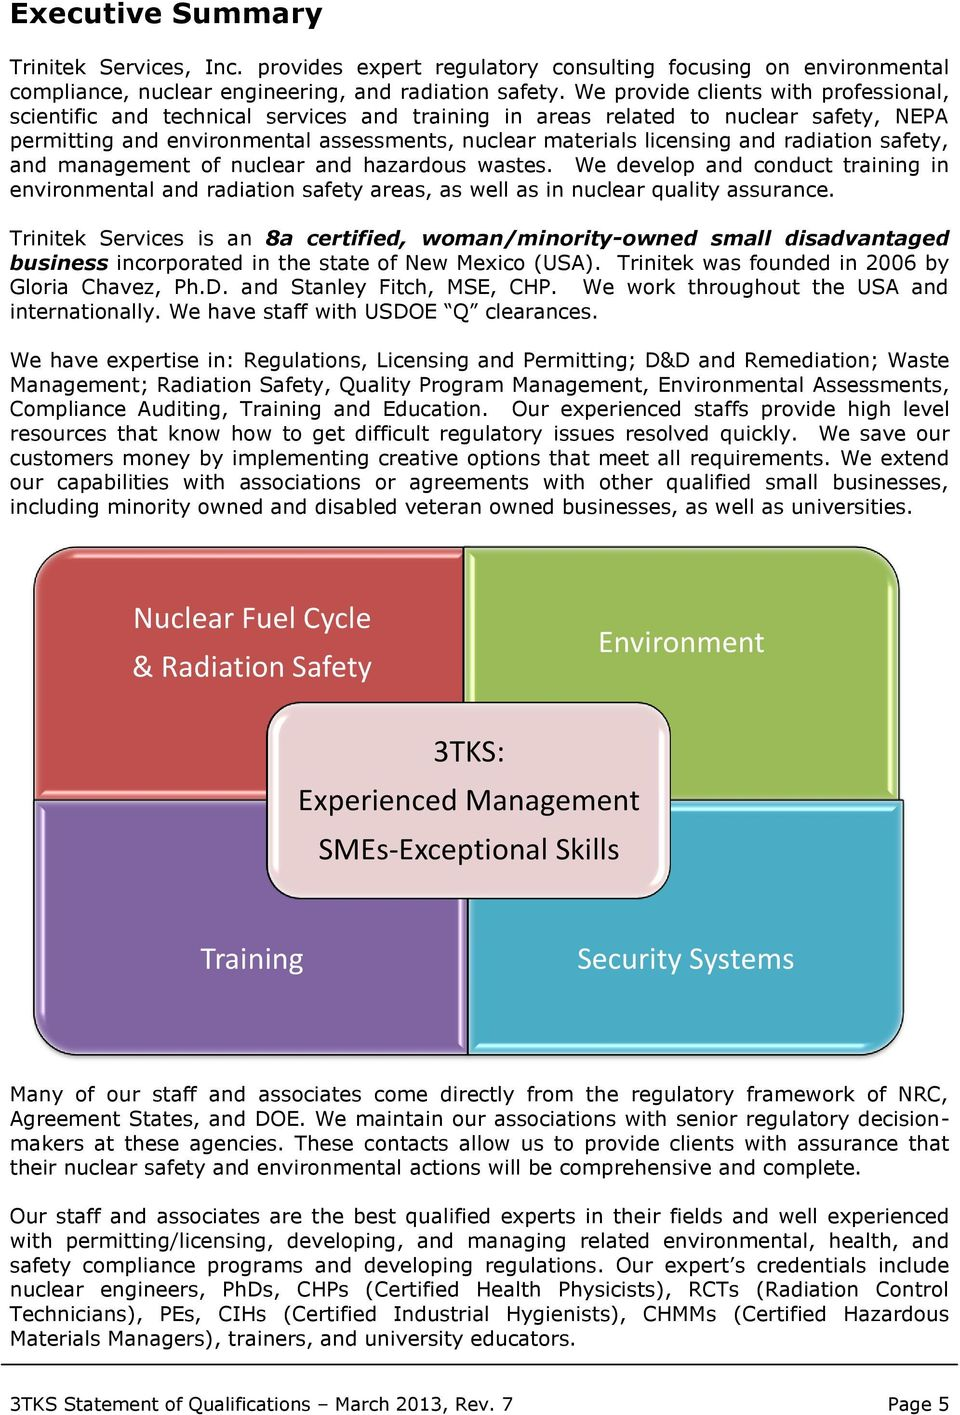 radiation safety, and management of nuclear and hazardous wastes. We develop and conduct training in environmental and radiation safety areas, as well as in nuclear quality assurance.